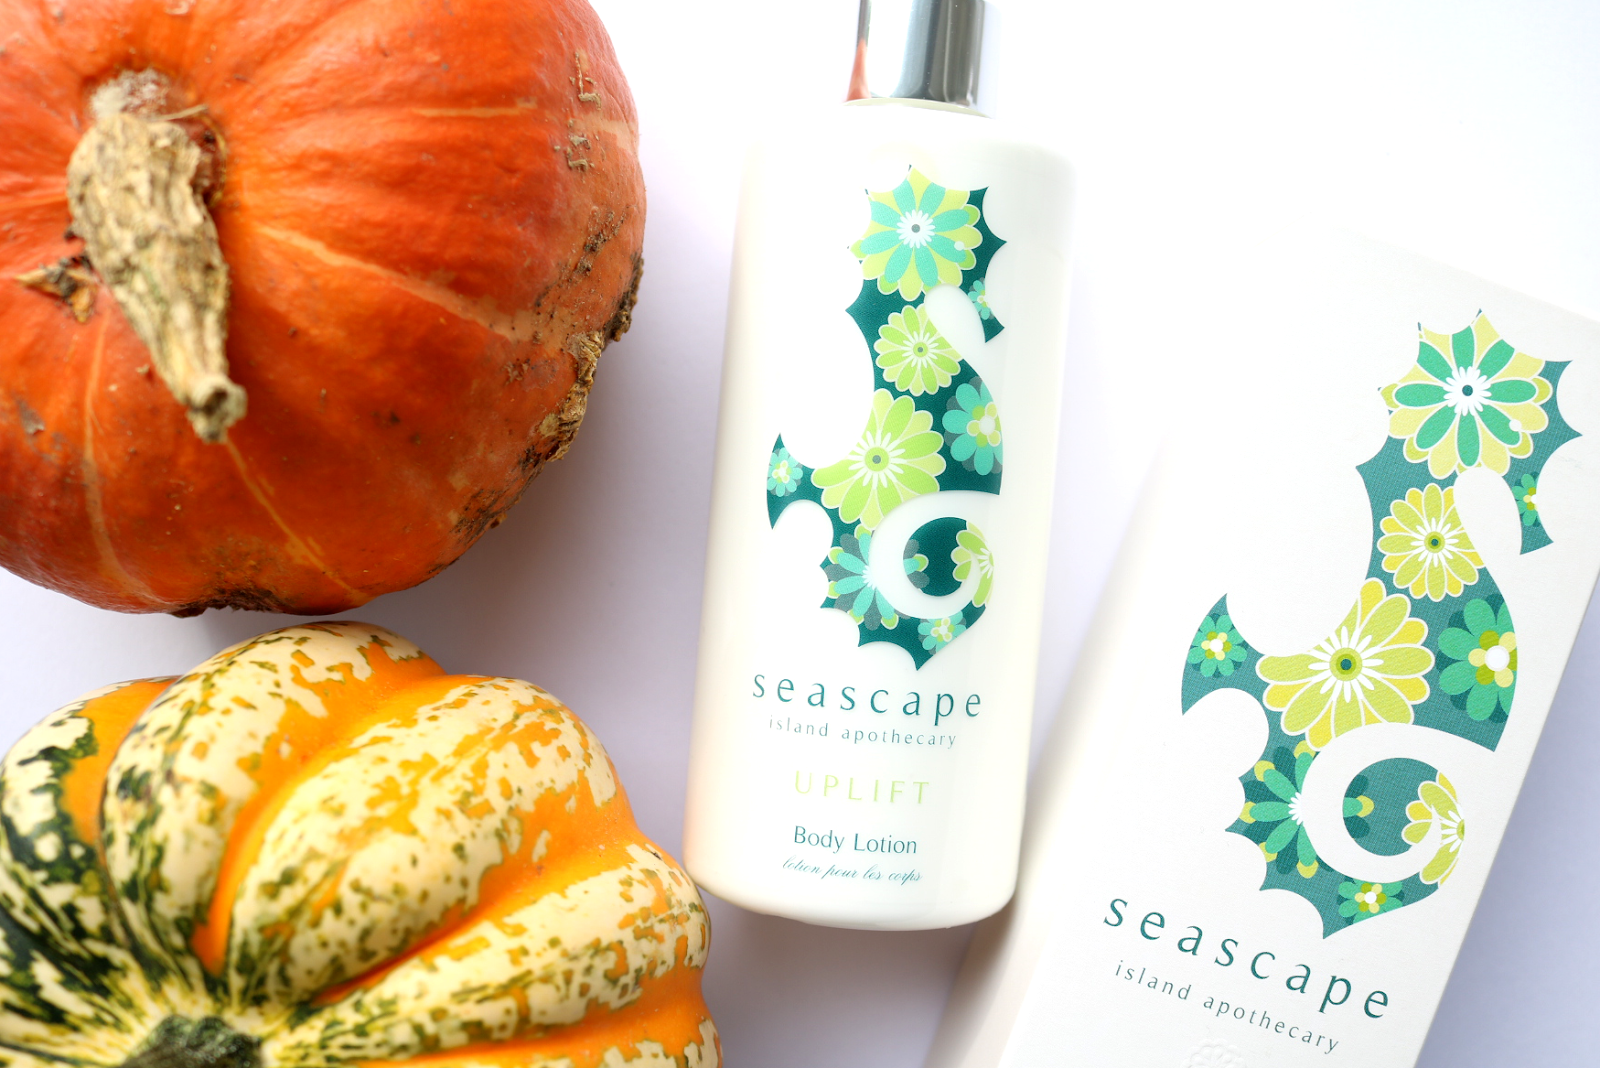 Seascape Island Apothecary Uplift Body Lotion